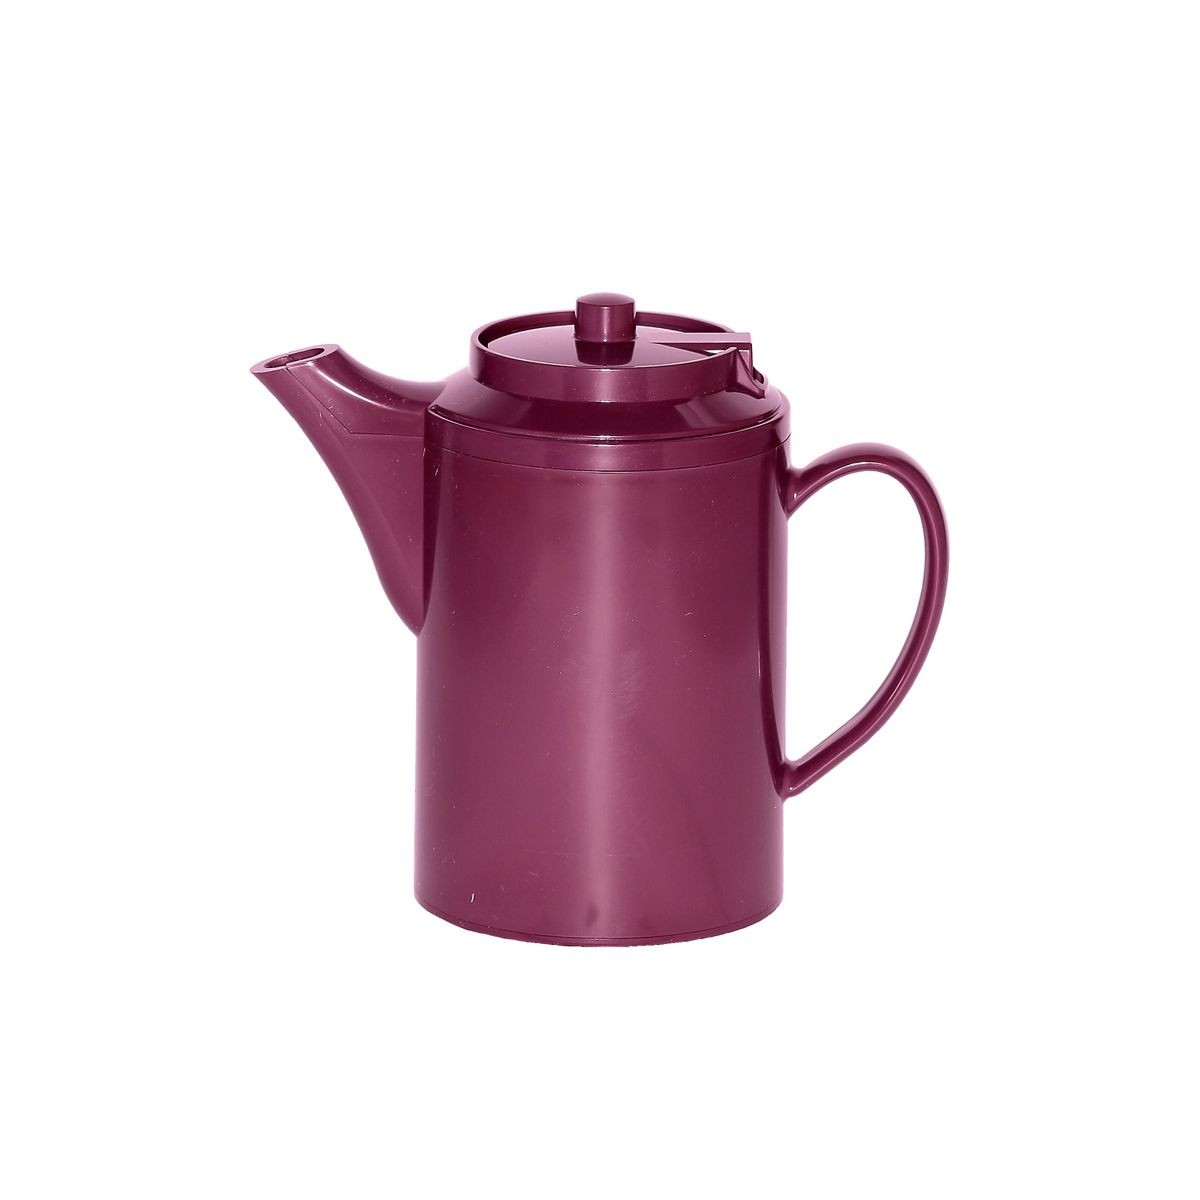 Service Ideas TS612BU Dripless Teapot with Baffled Spout, Self-Locking Lid, Burgundy 16 oz.